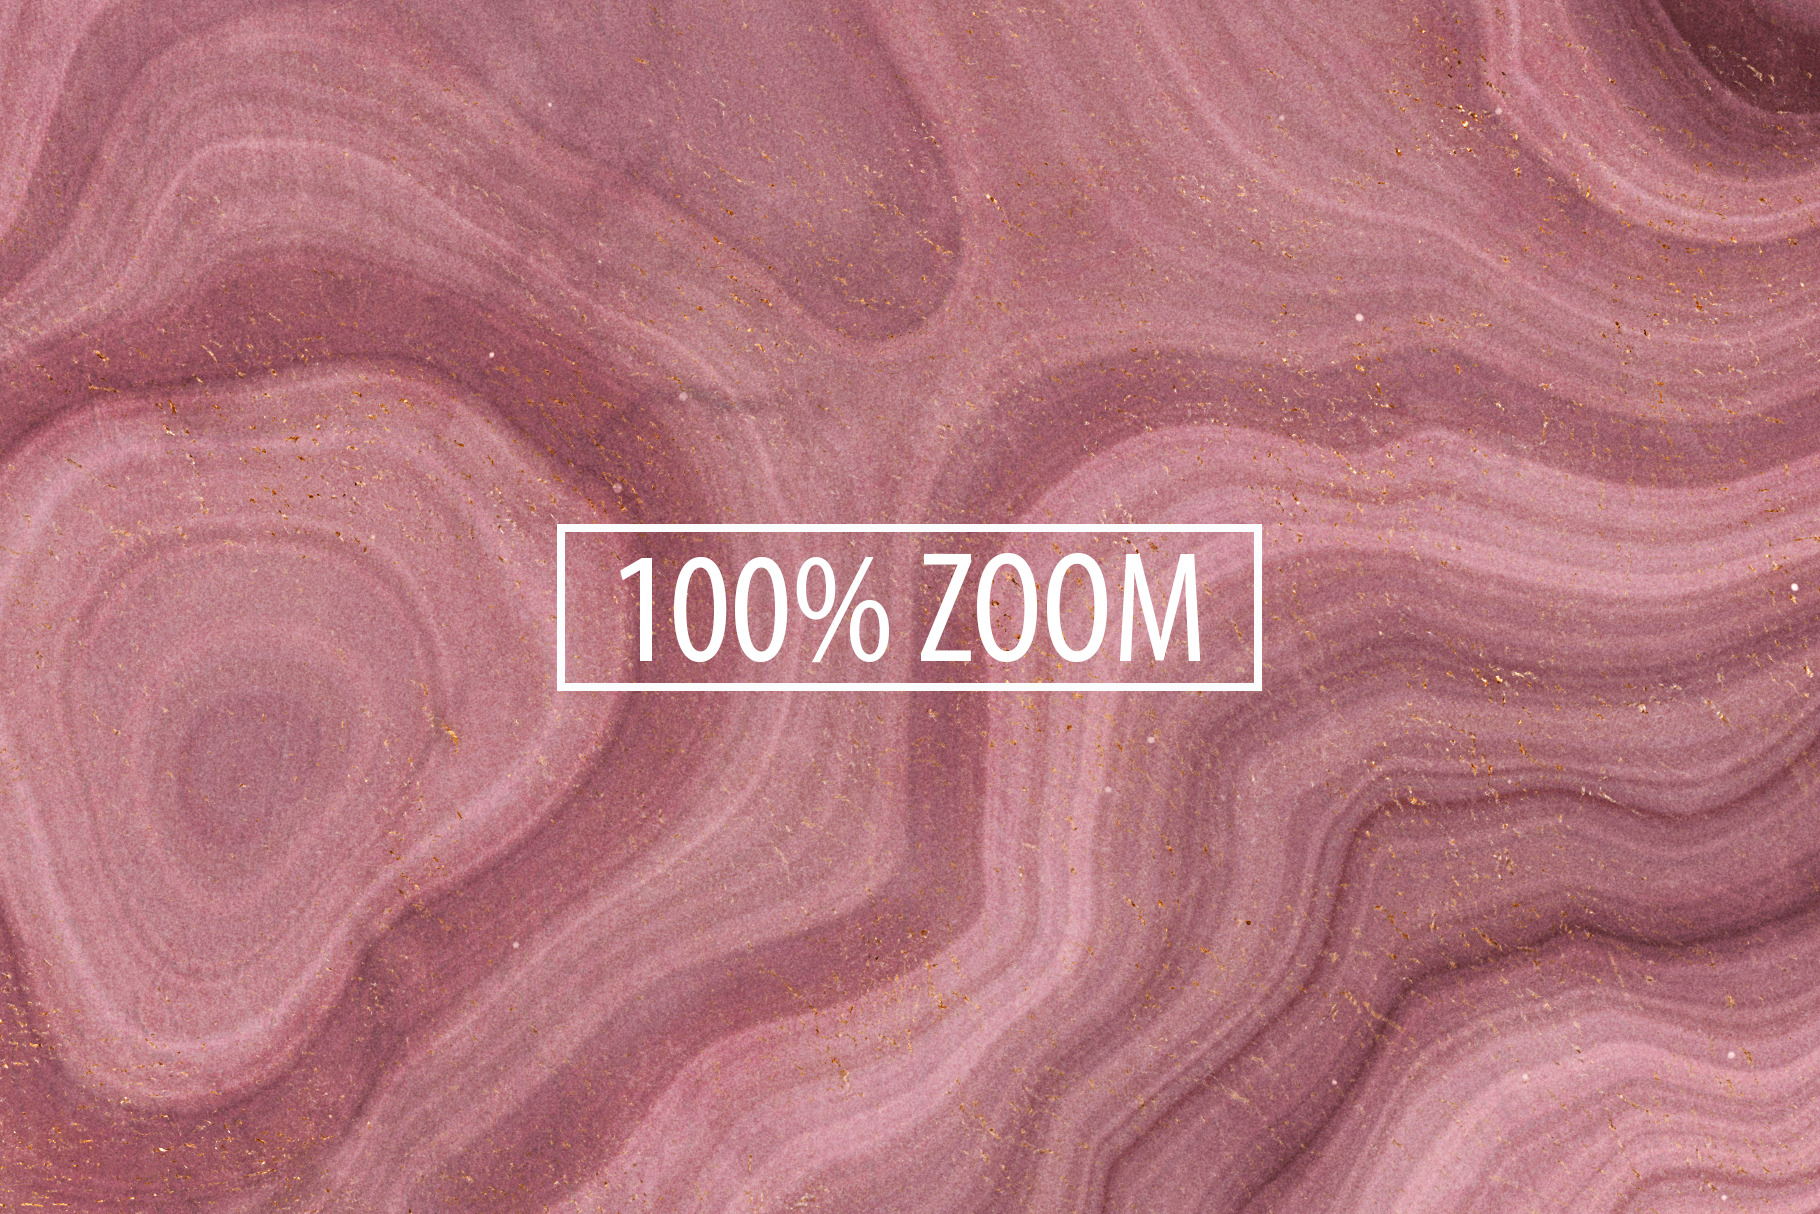 Pink Agate Illustrations, Textures & Patterns example image 15